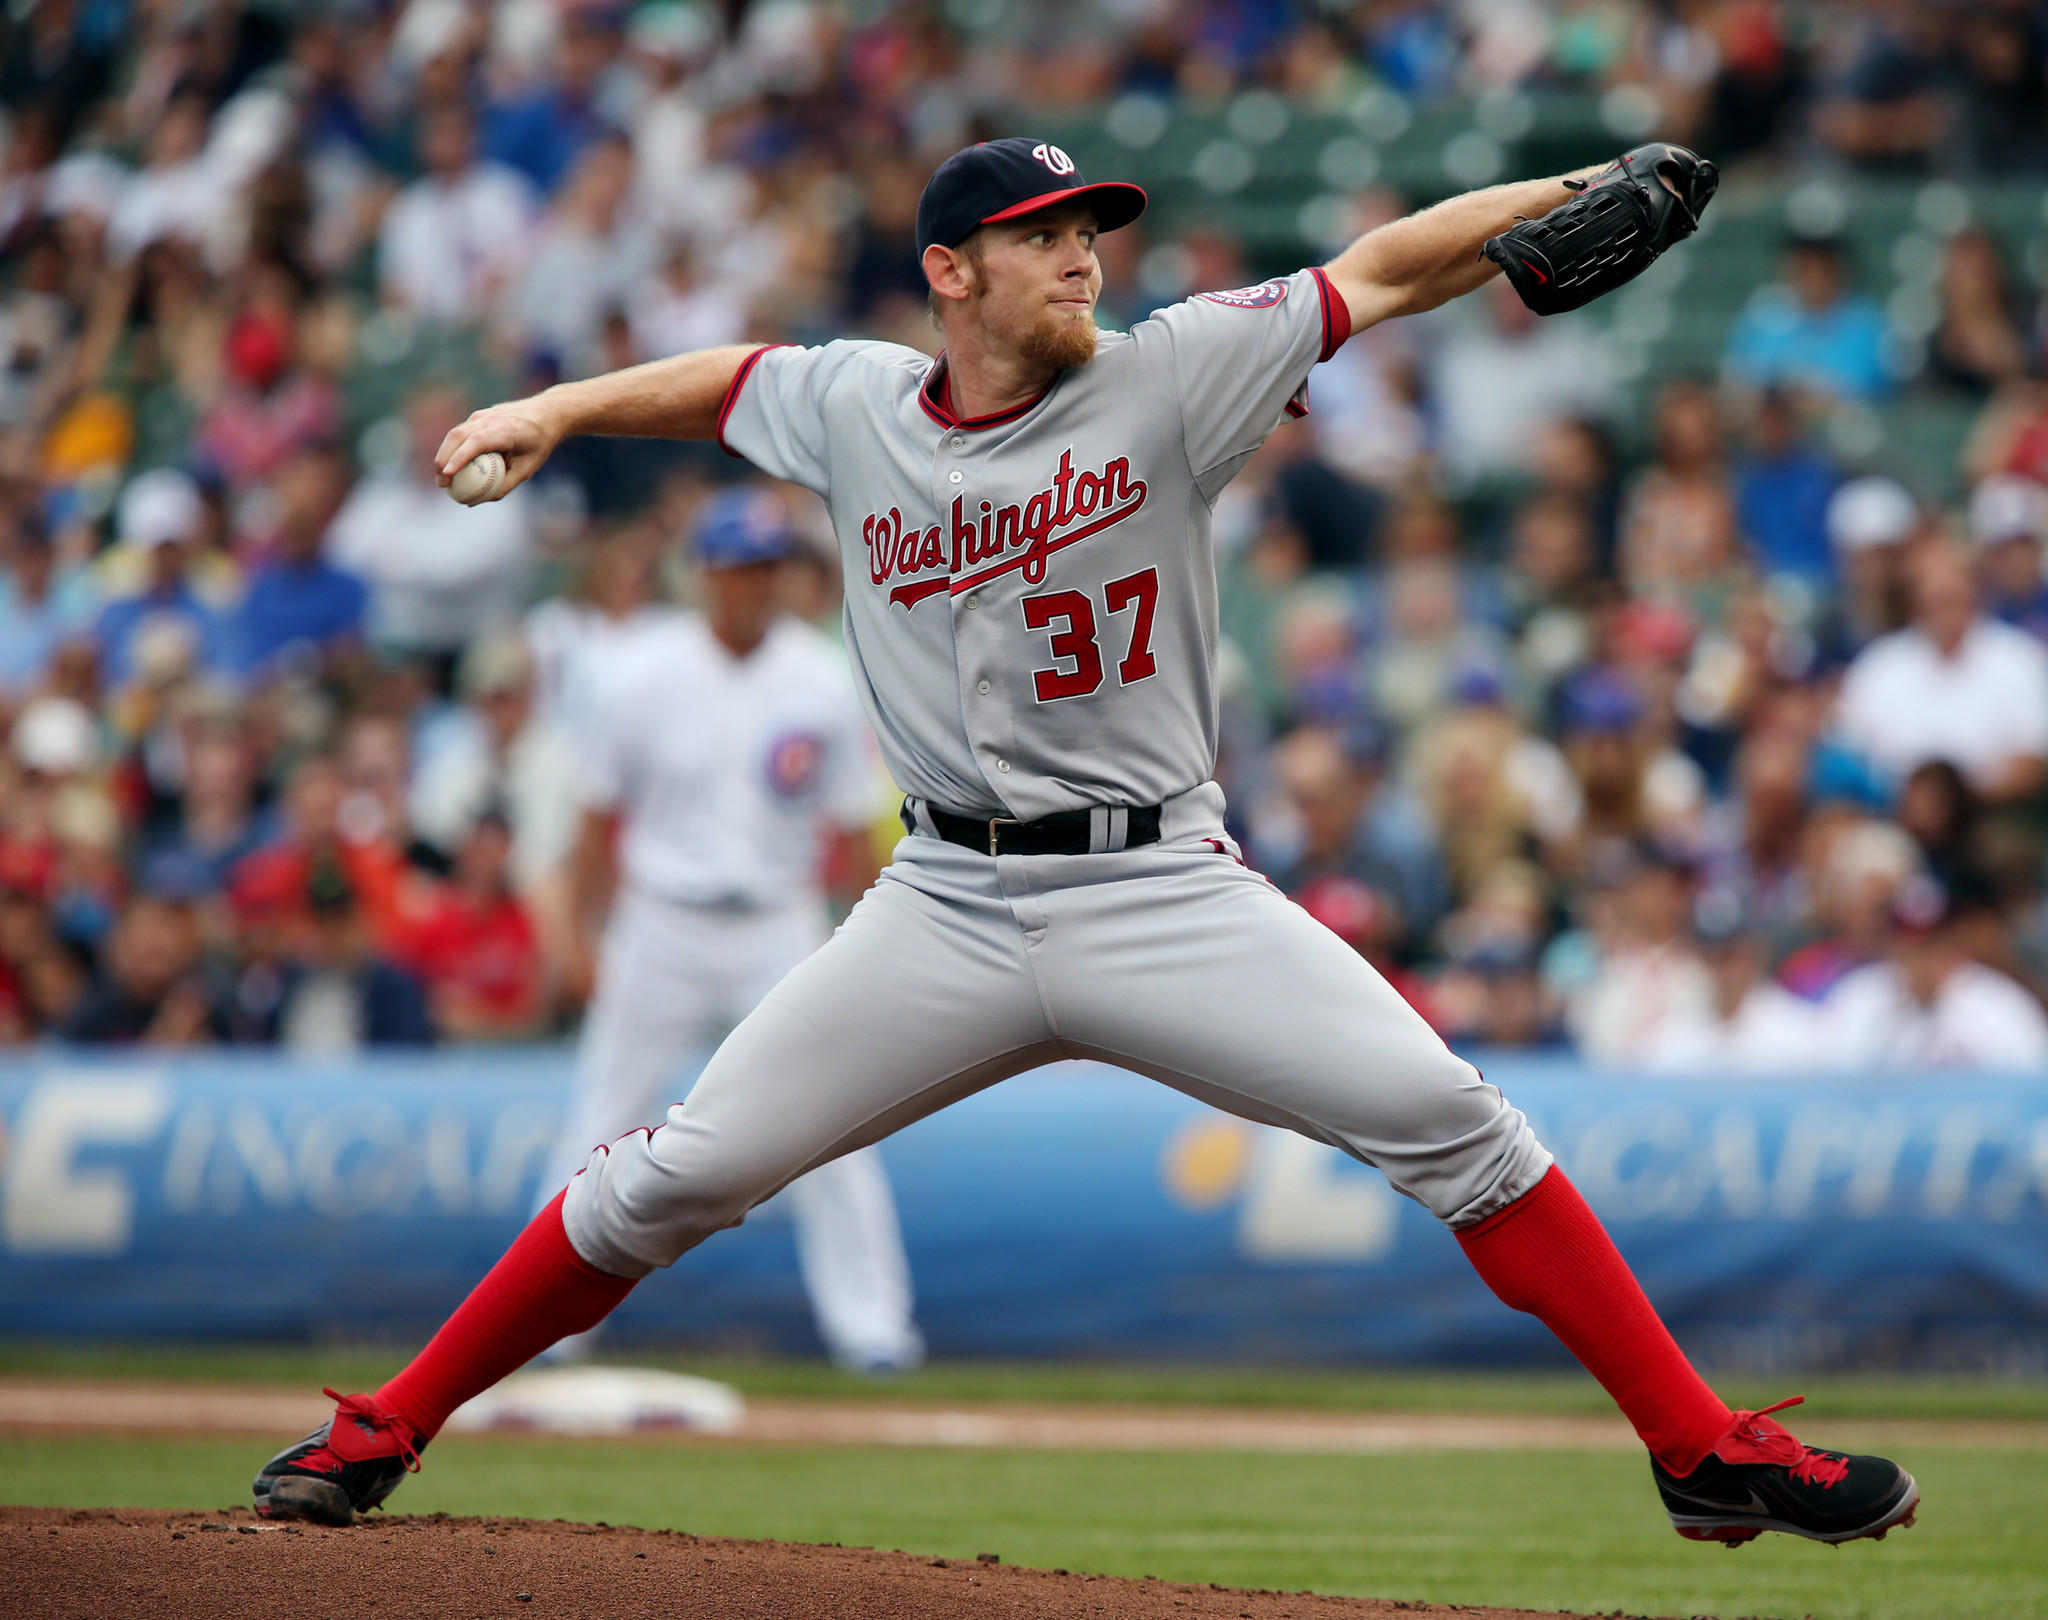 Stephen Strasburg signed a one-year contract with the Nationals.